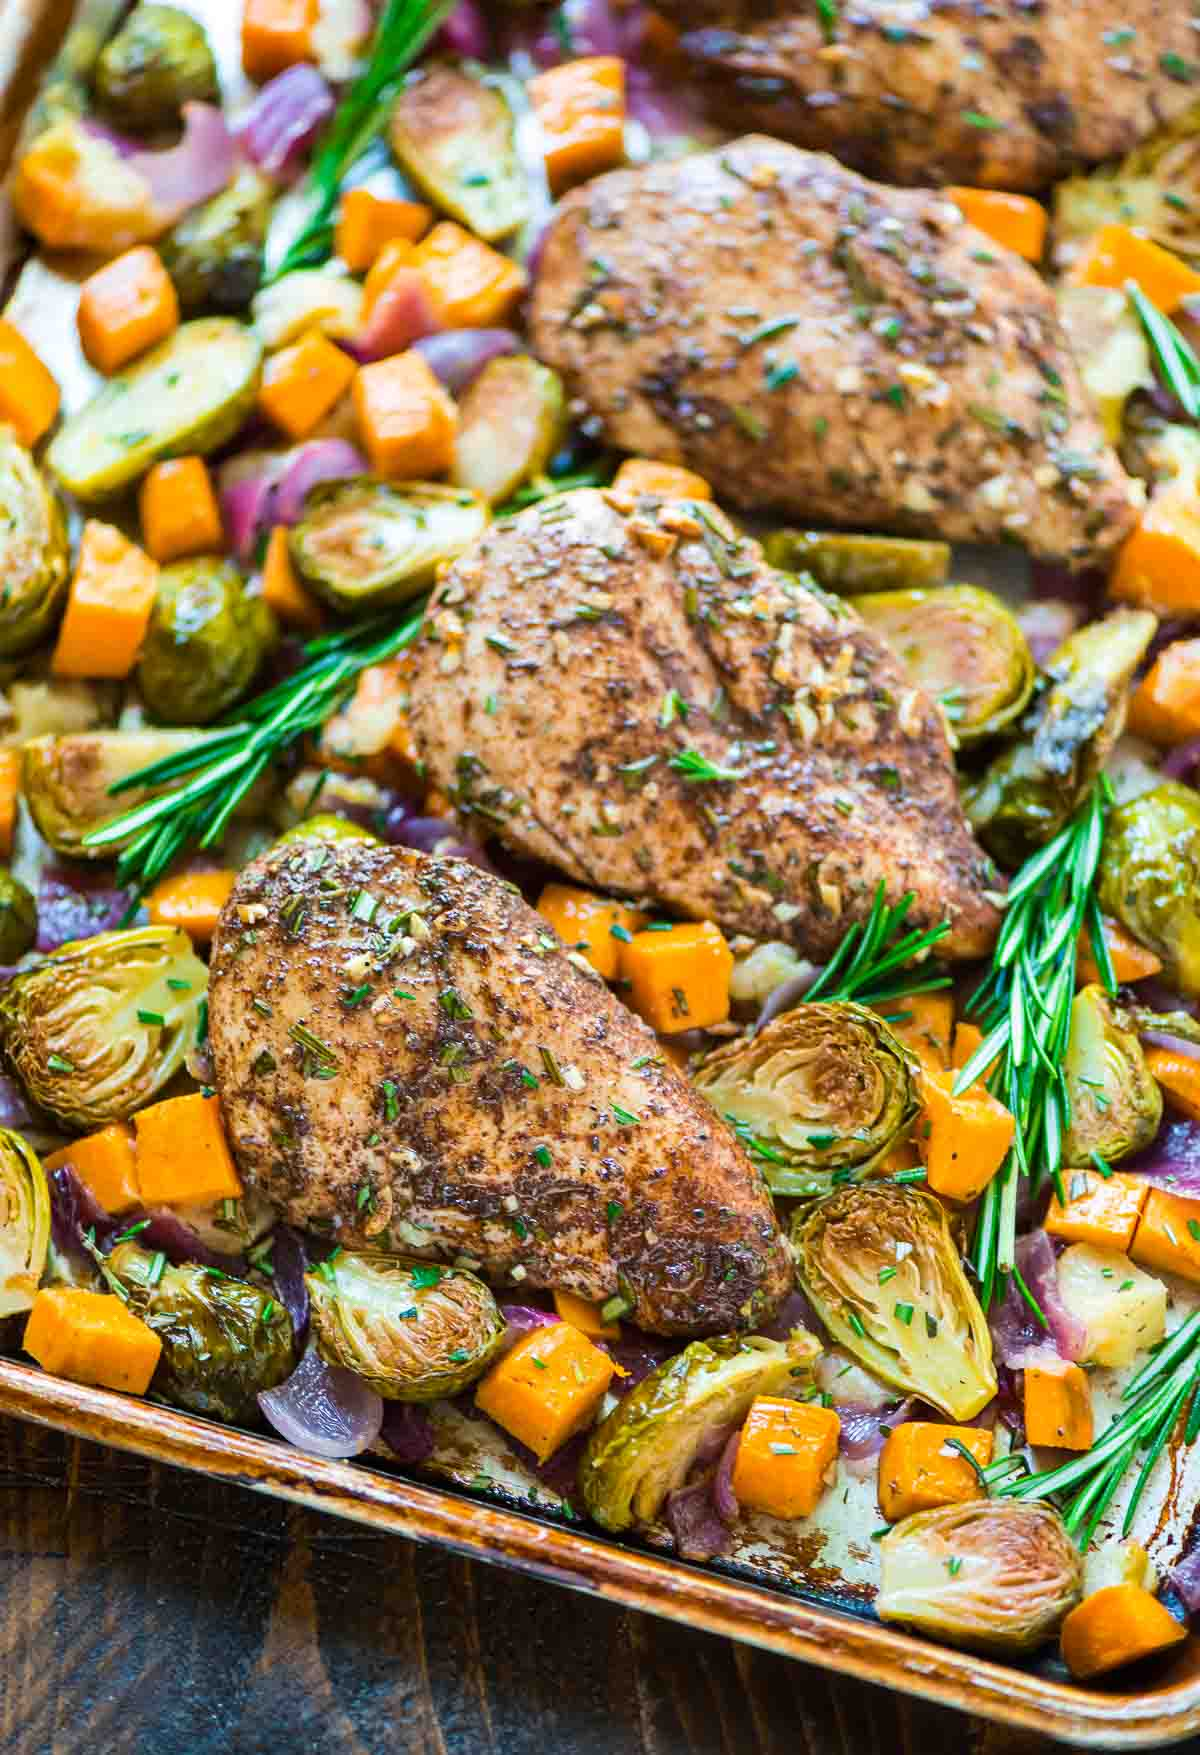 One Tray Meals: Sheet Pan Chicken with Sweet Potatoes, Brussels Sprouts & Bacon from Well Plated by Erin | The Health Sessions